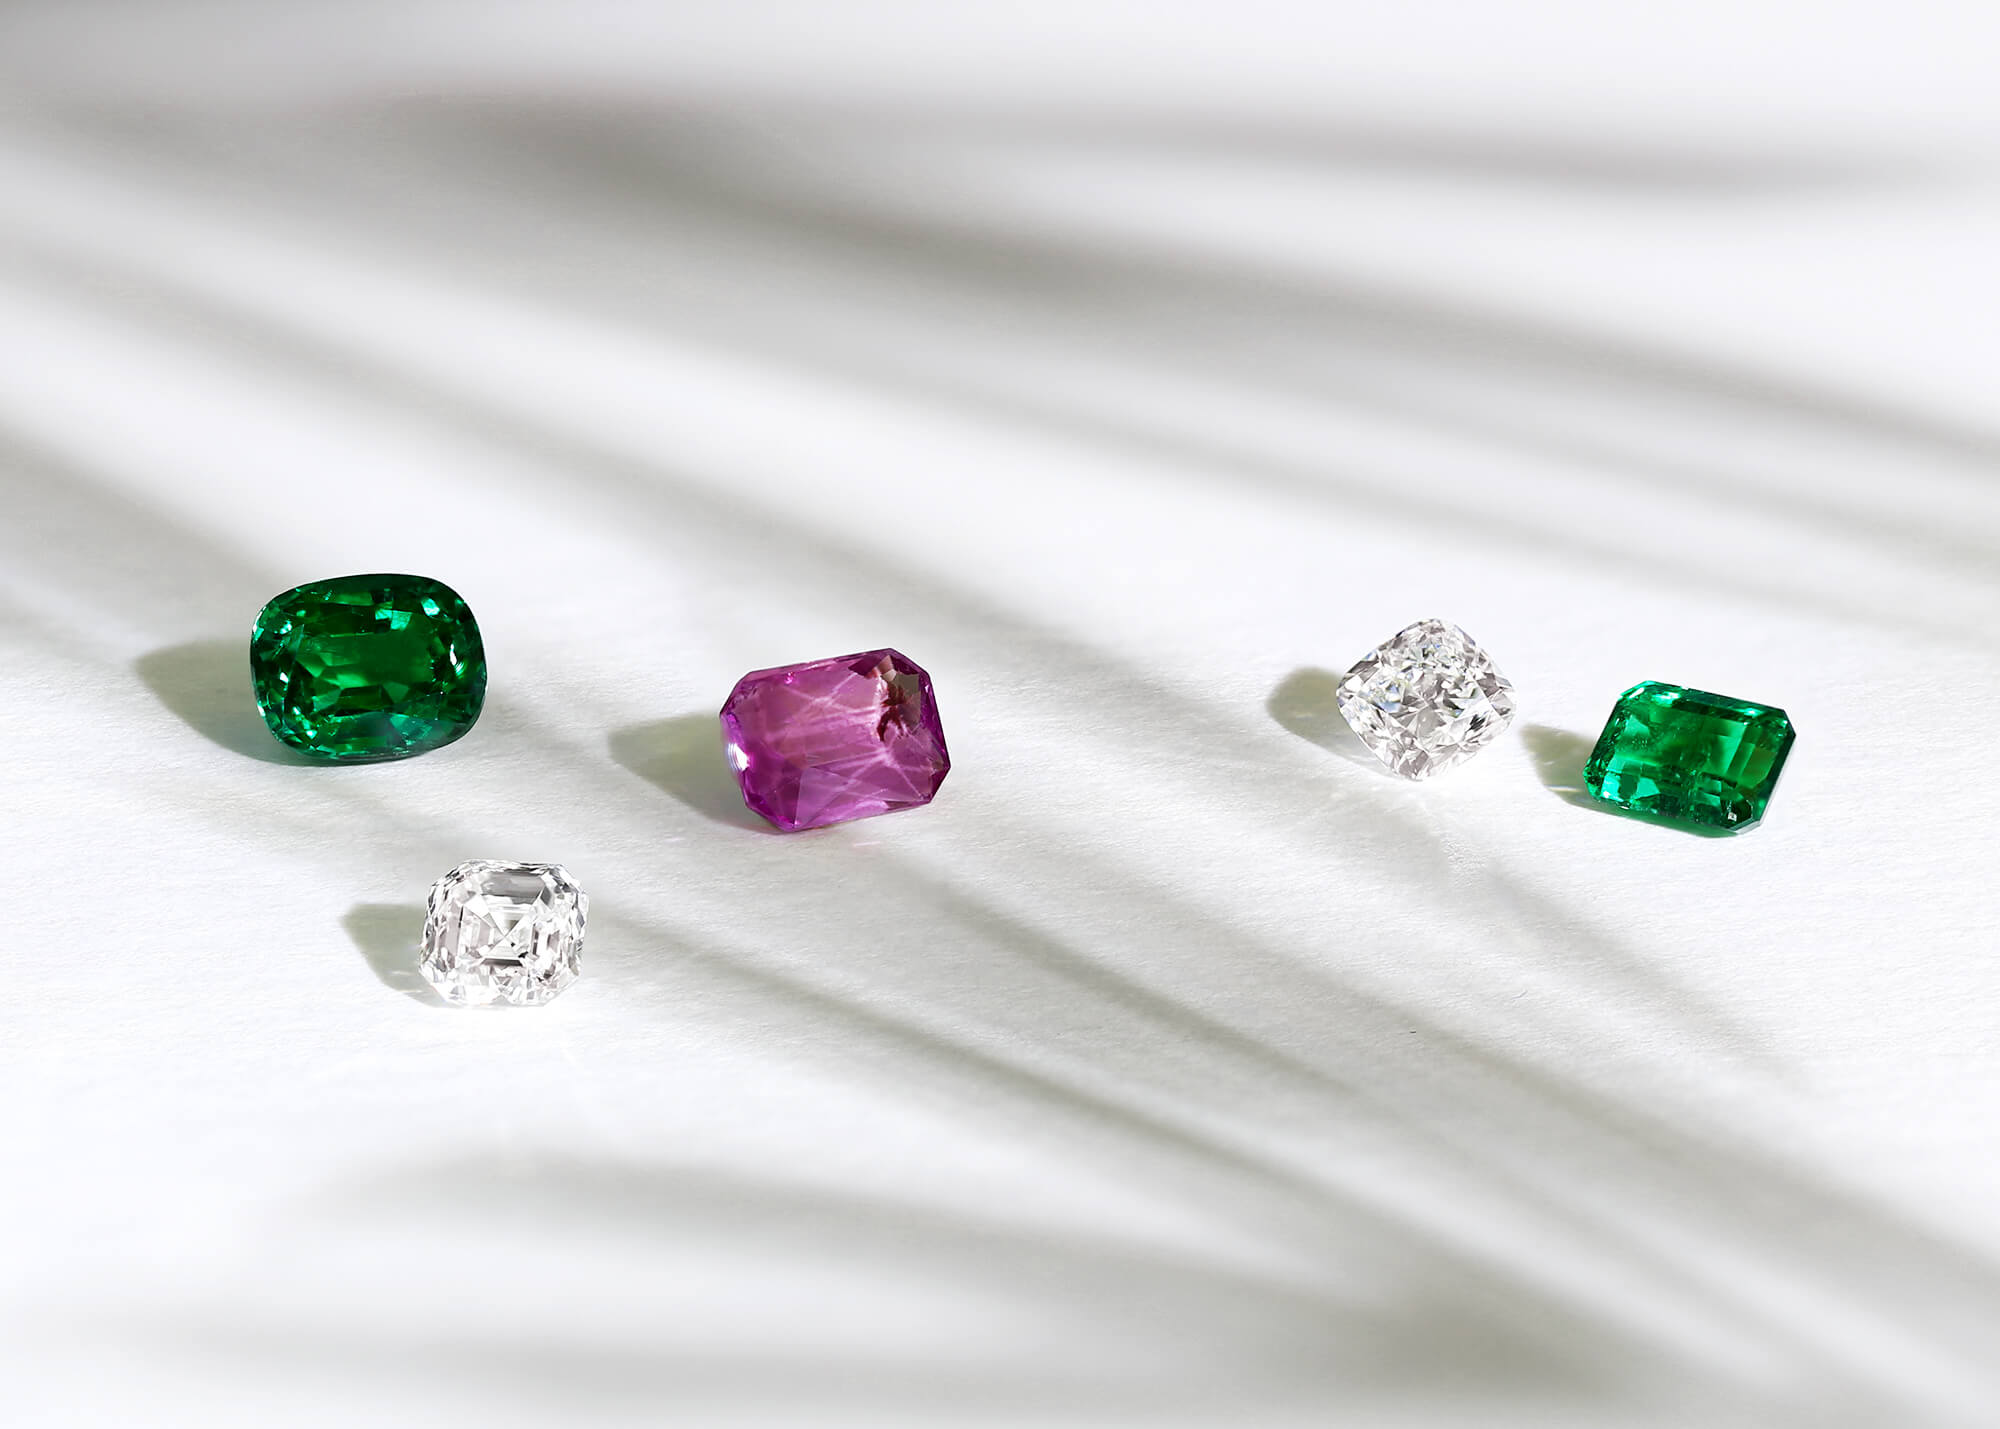 Diamonds & Gemstones - Our qualified gemmologists will help you find the perfect centre stone for your engagement ring, using their expertise to prepare a selection of the finest ethically sourced diamonds and gemstones for your design.Diamonds >Gemstones >